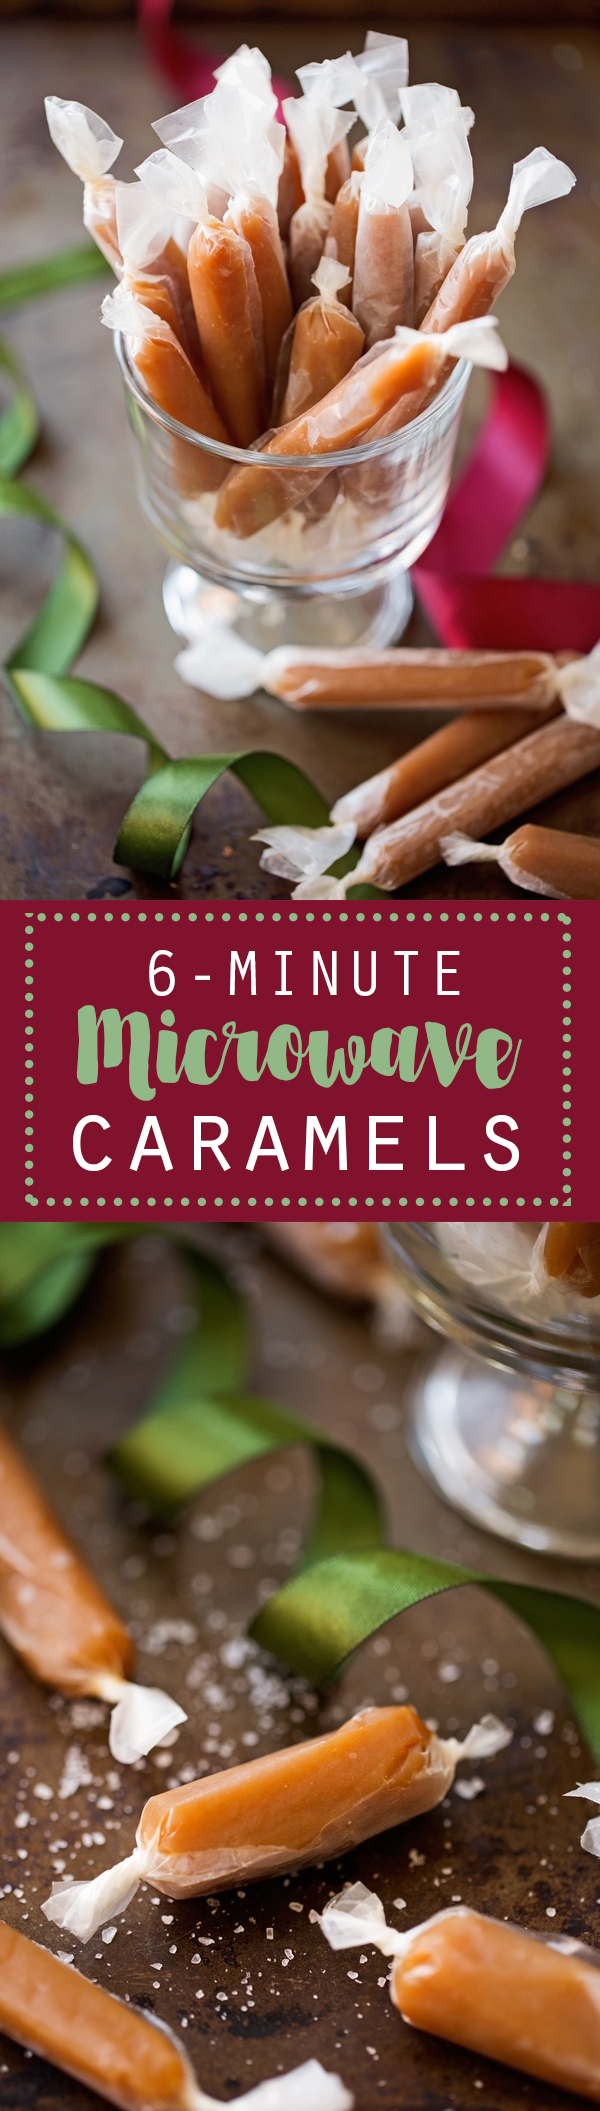 Easy 6-Minute Microwave Caramels - These take just 6 minutes in the microwave and 7 simple ingredients! Chewy Caramels just like Werther's! | #microwavecaramel #caramelchews #caramels | Littlespicejar.com